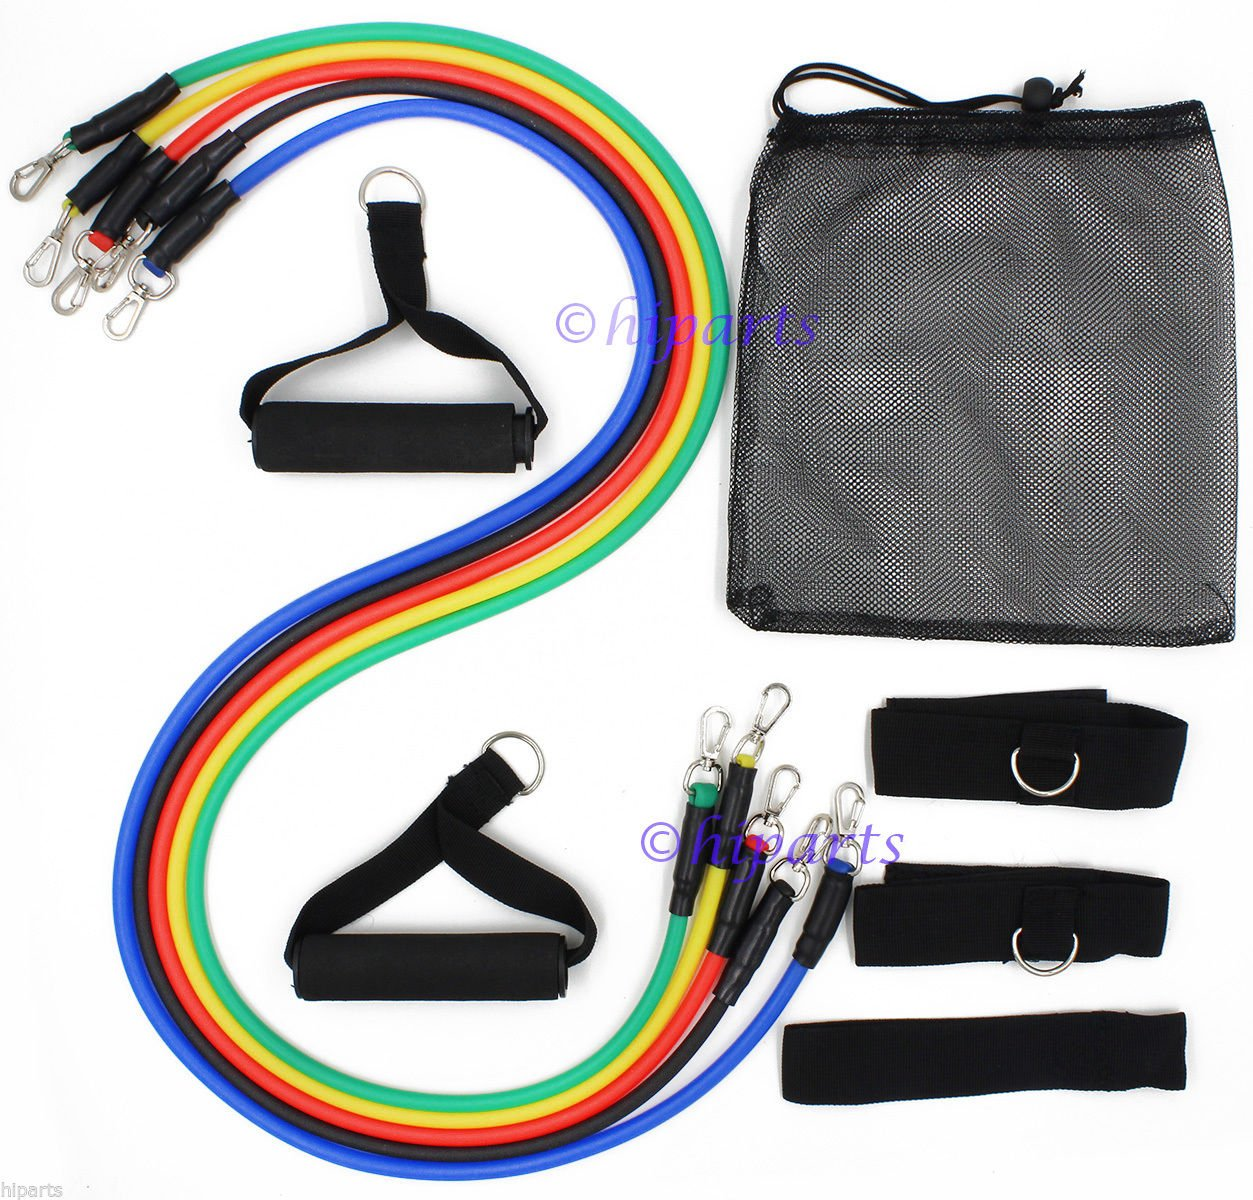 Premium 11 PCS Resistance Bands Set Yoga Abs Exercise Fitness Tube Workout Bands